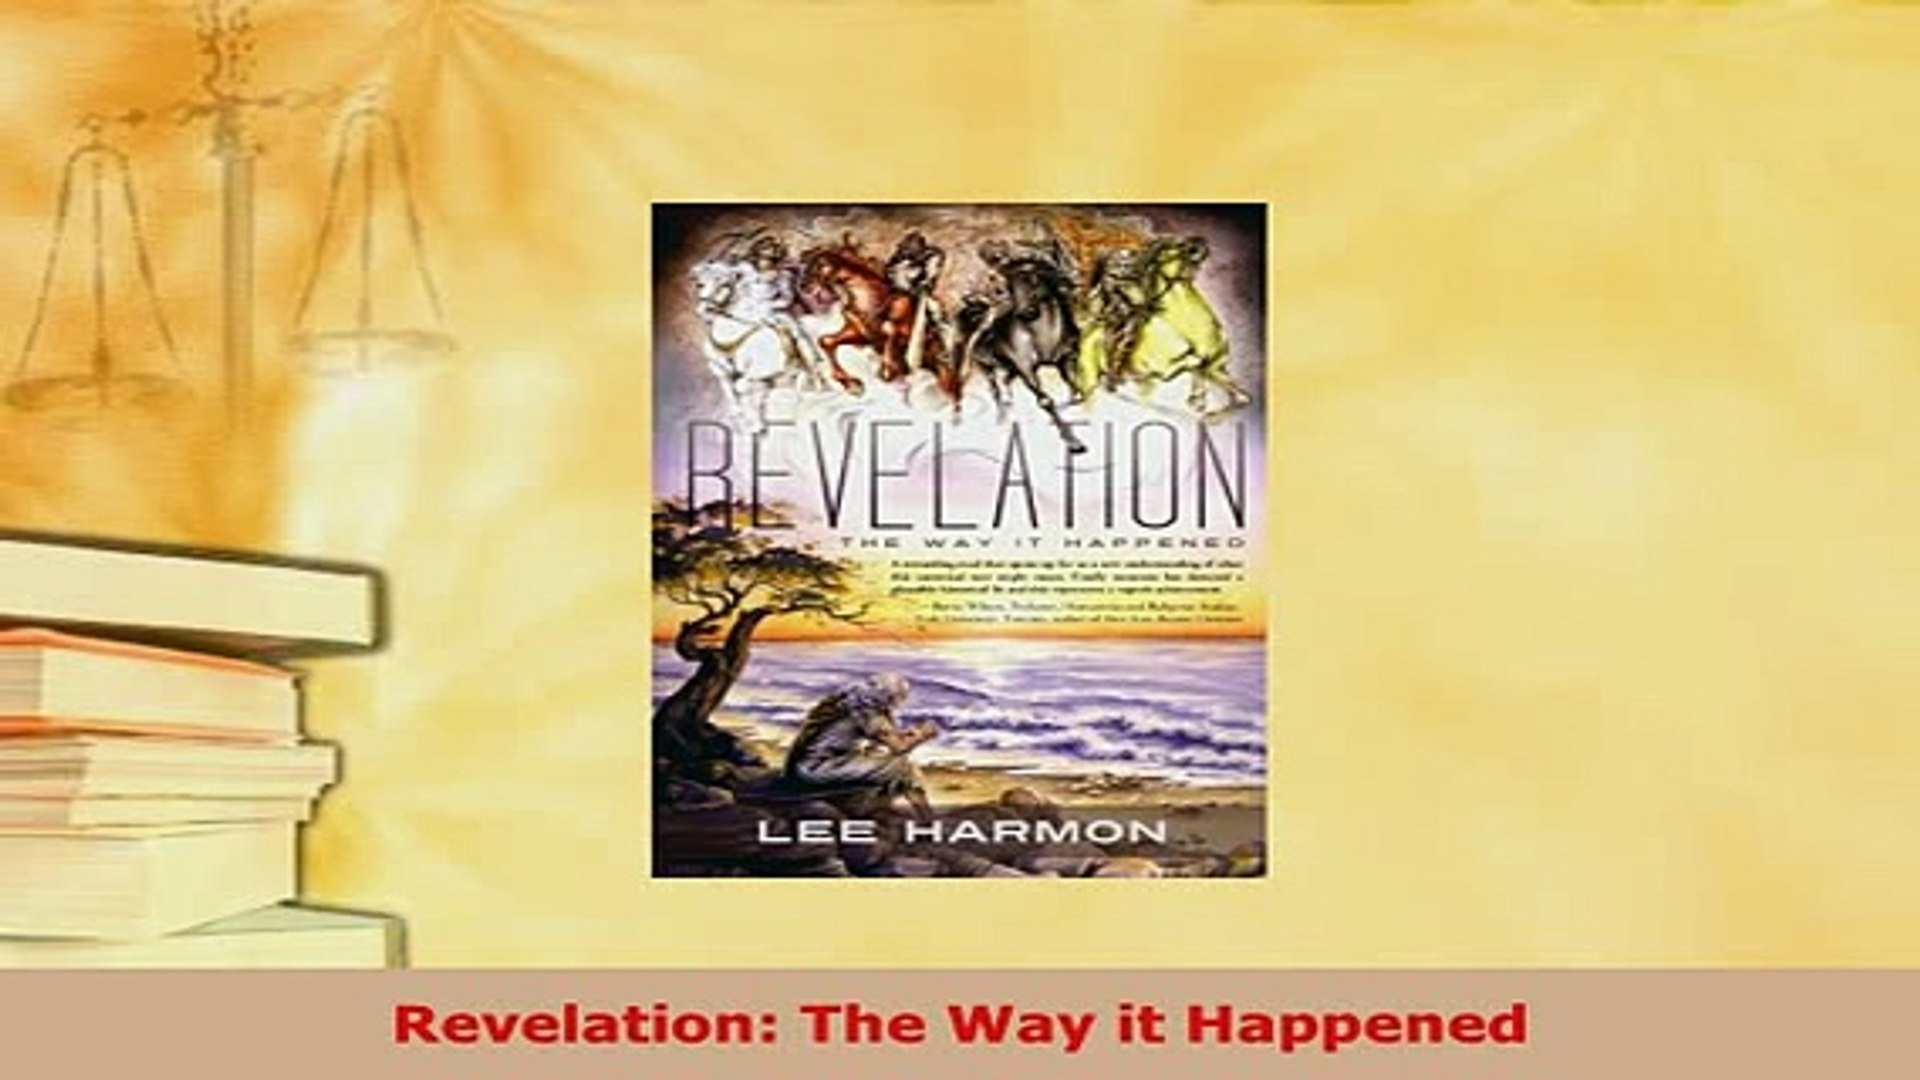 Revelation: The Way it Happened